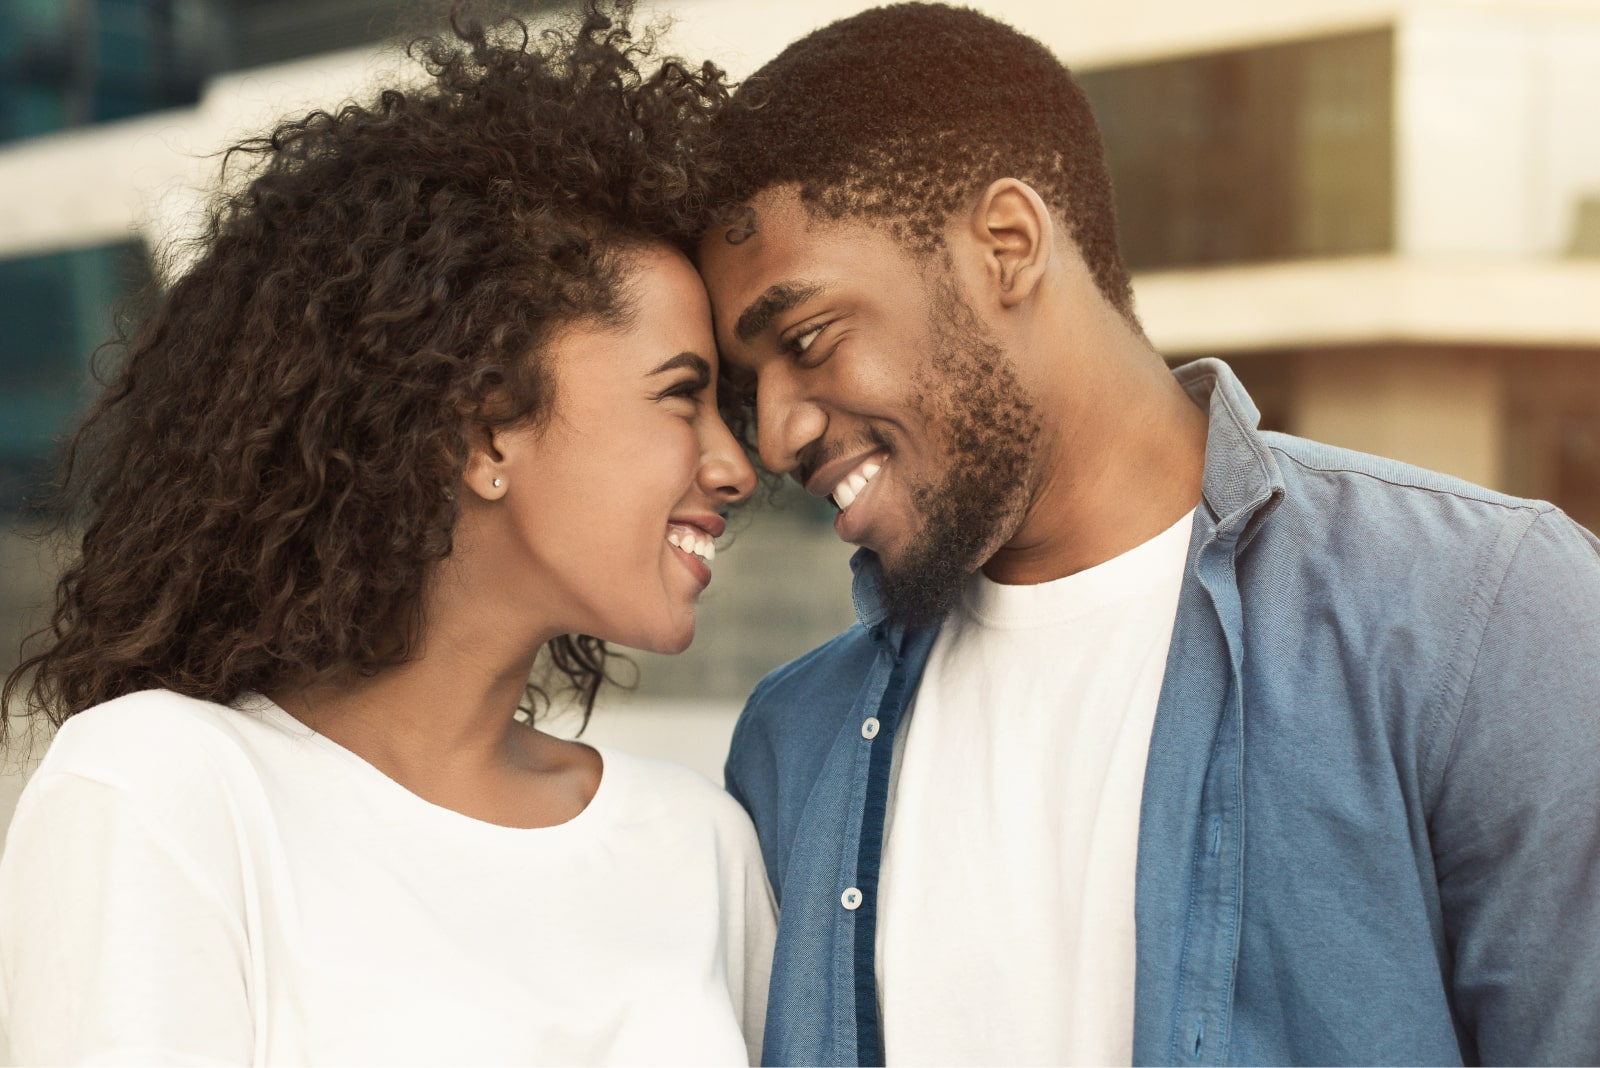 Top 10 Obvious Signs A Man Is Attracted To You Sexually